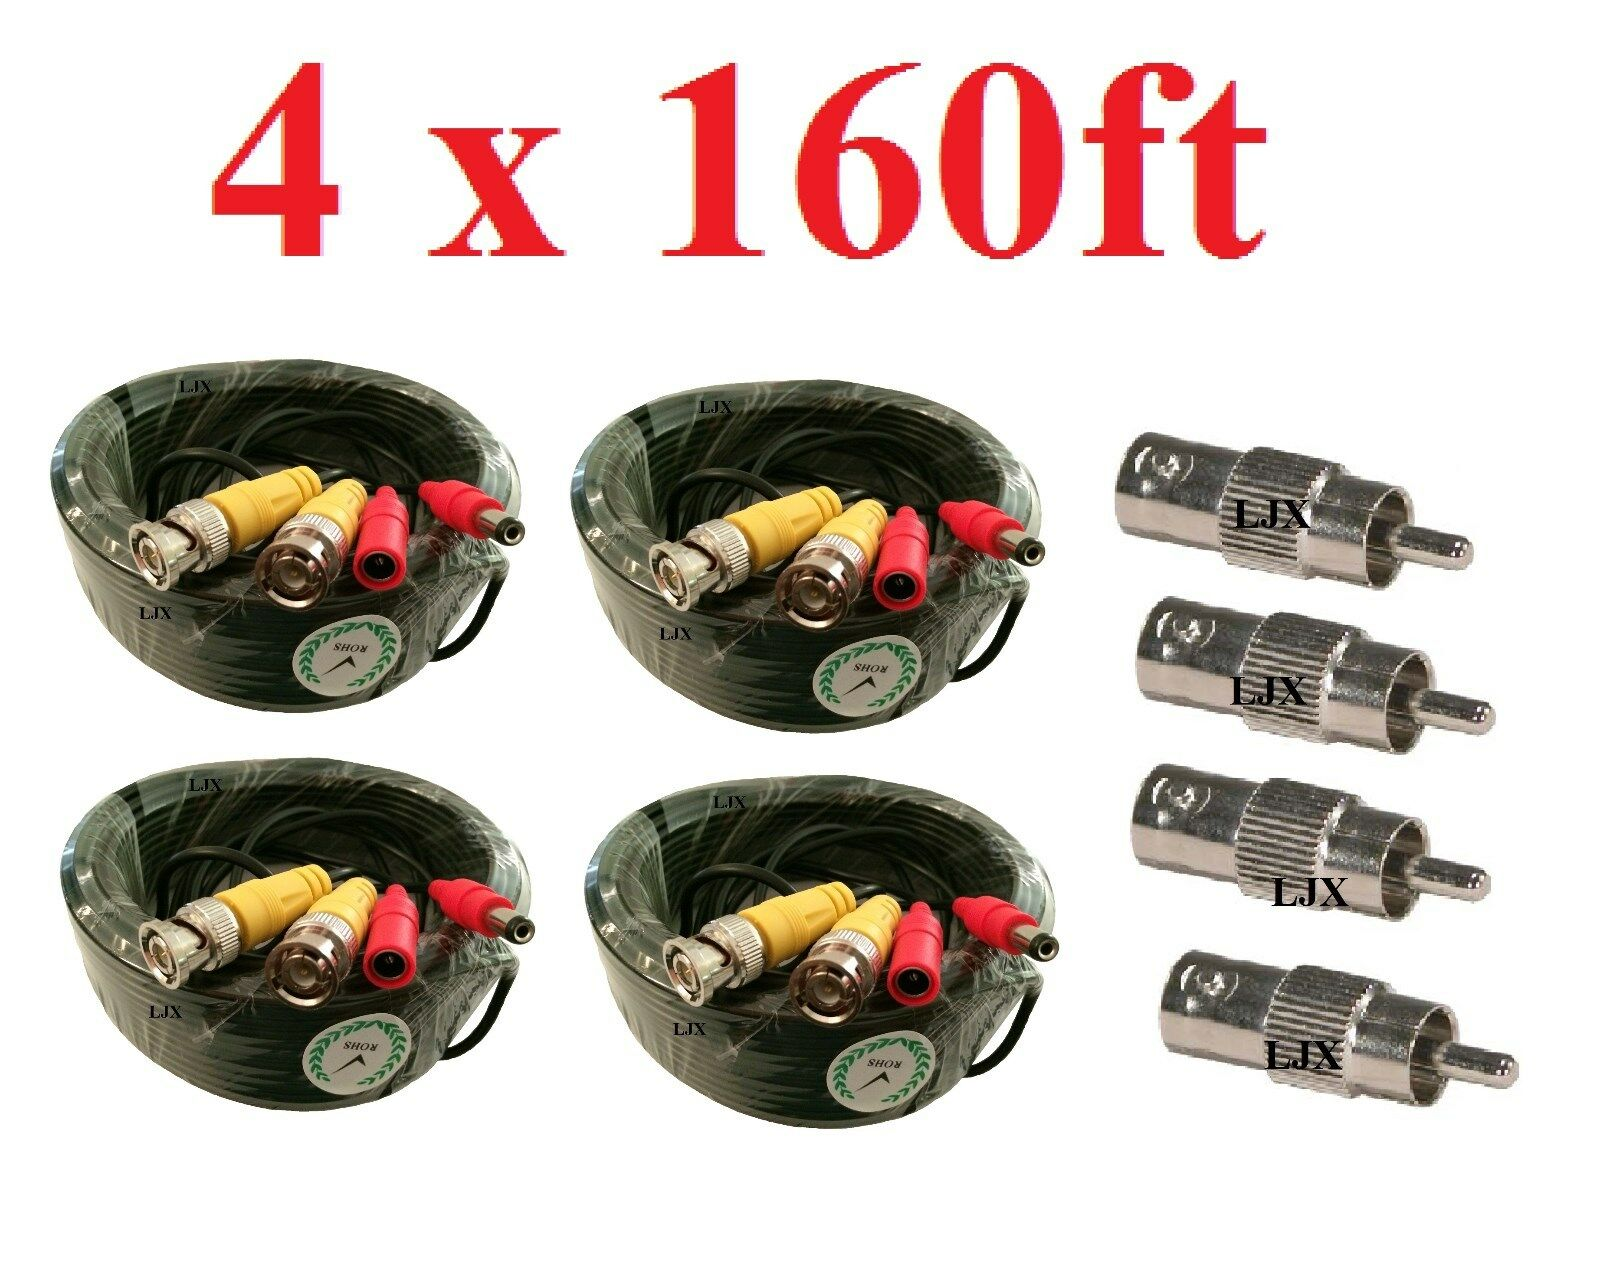 (4) New 160ft BNC CCTV Video Power Cable CCD Security Camera DVR Wire Cord